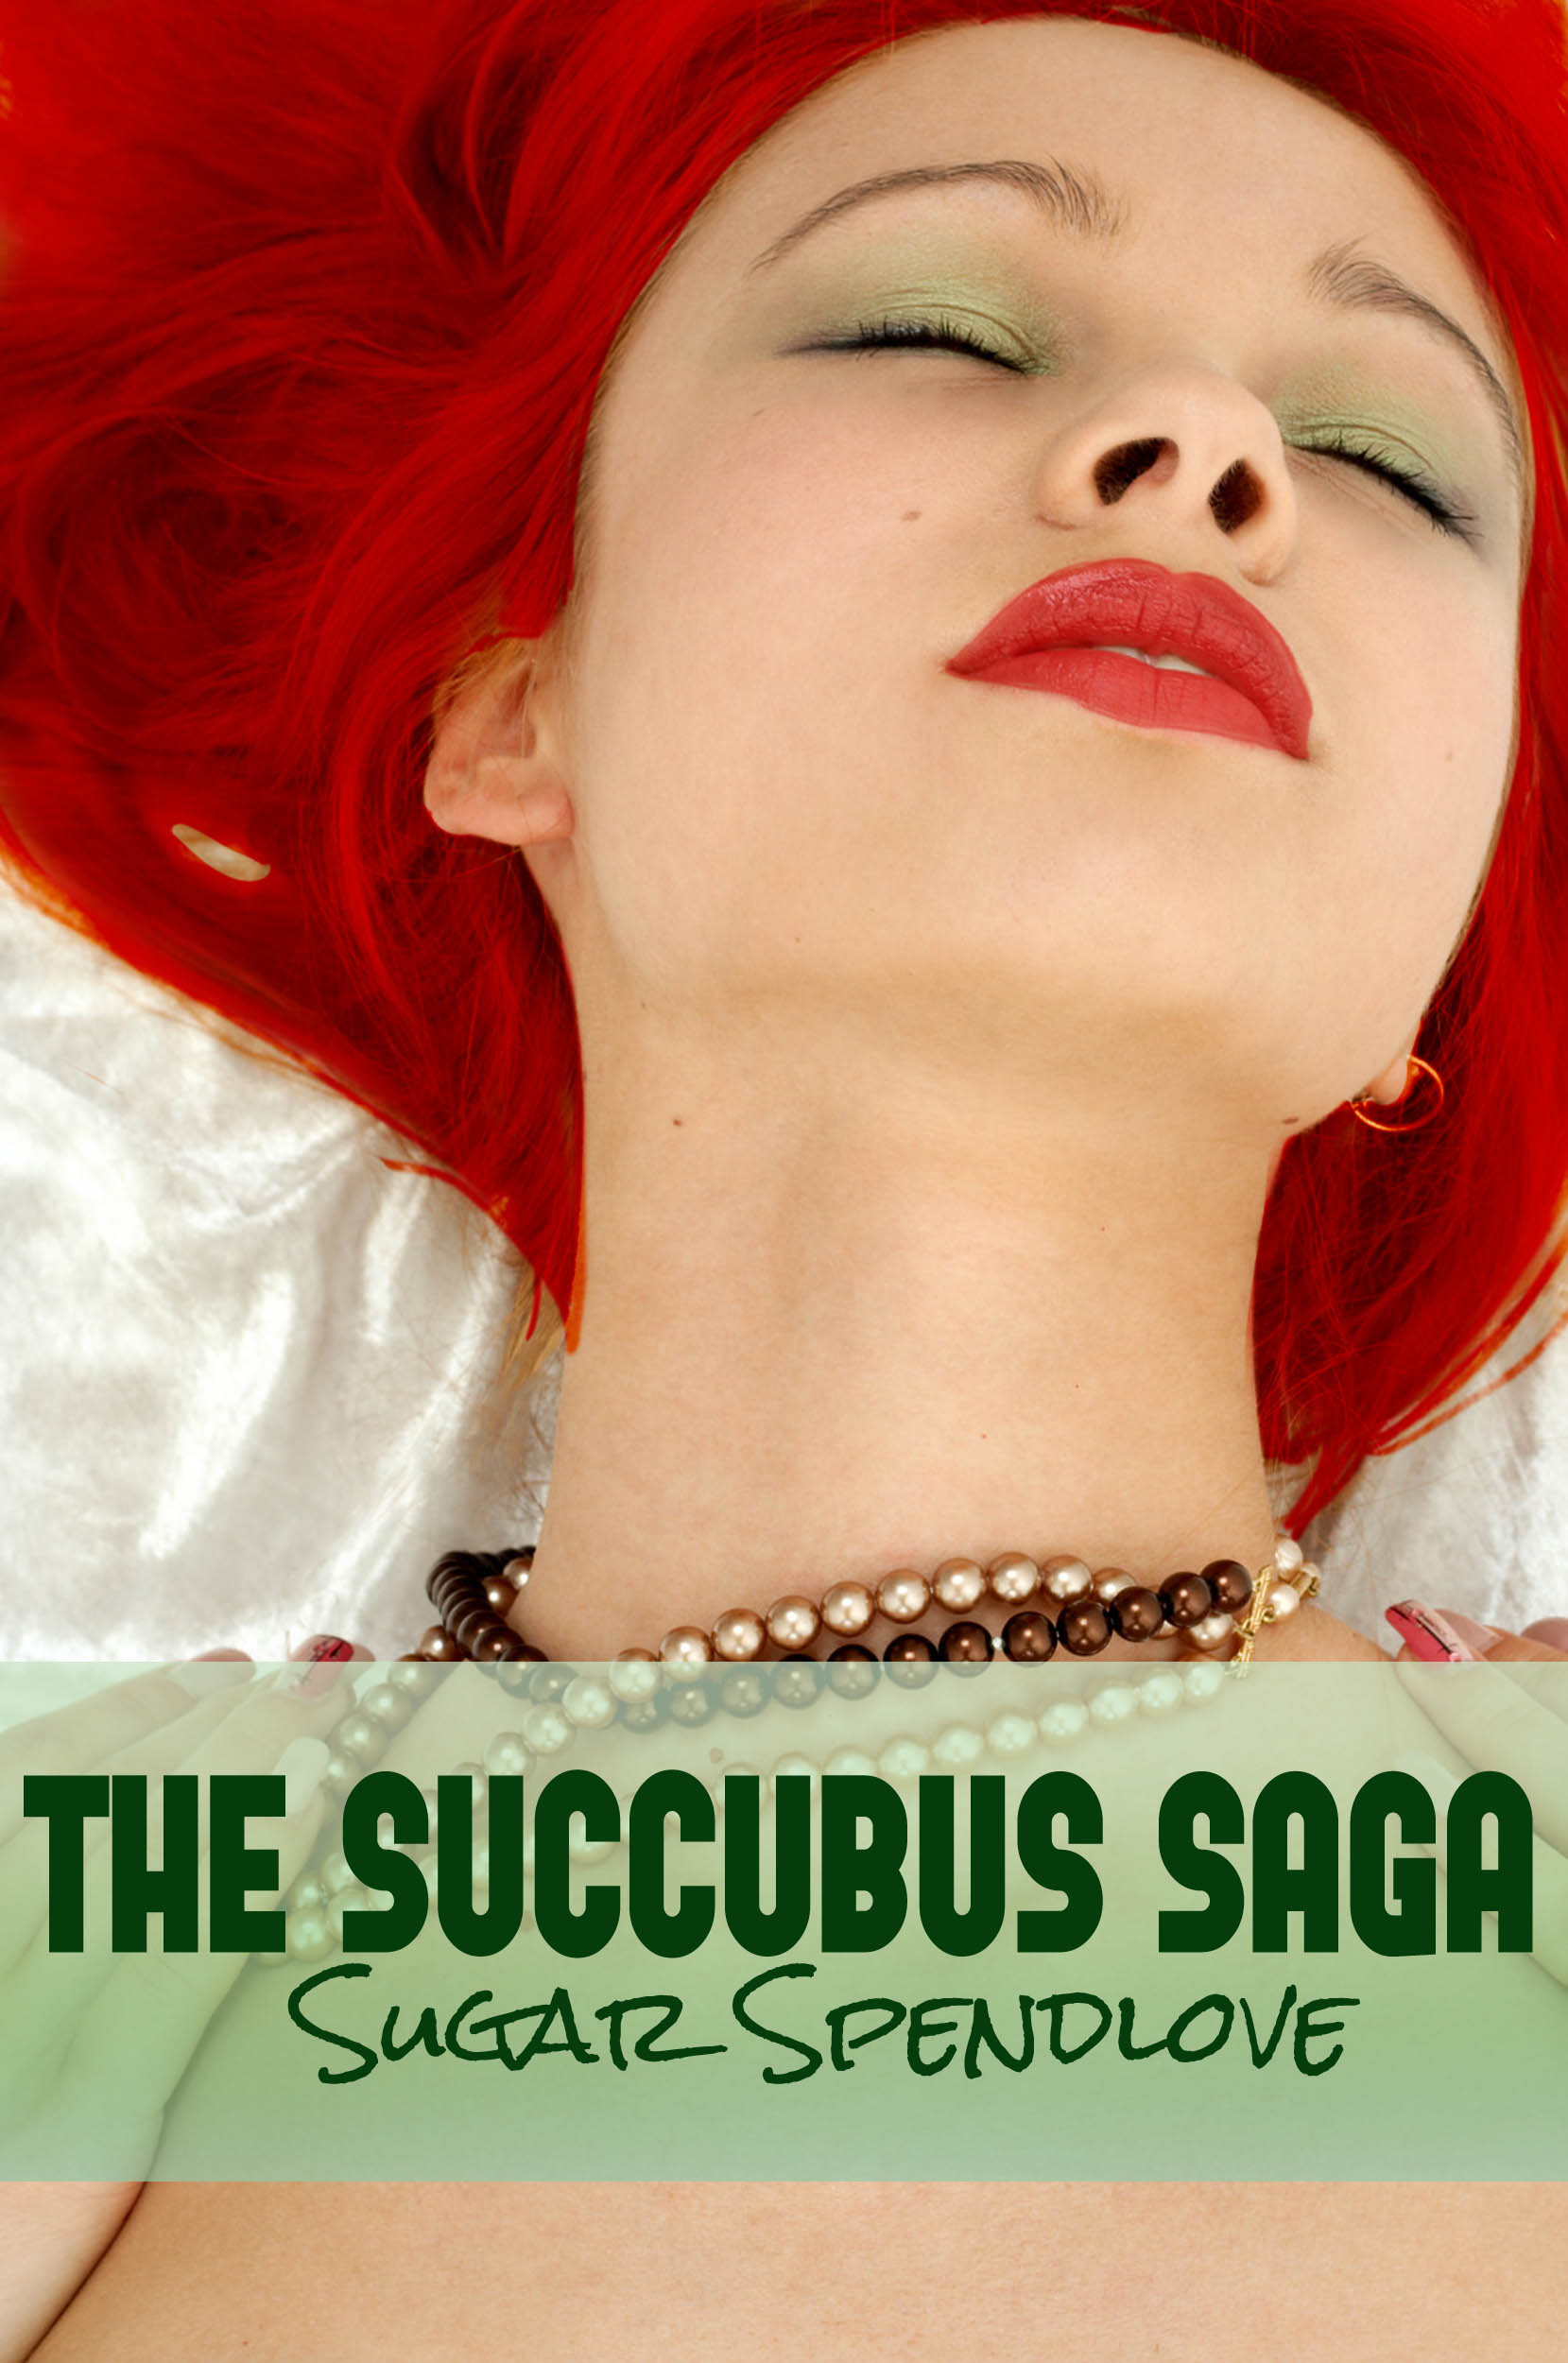 Succubus stories sexy movies